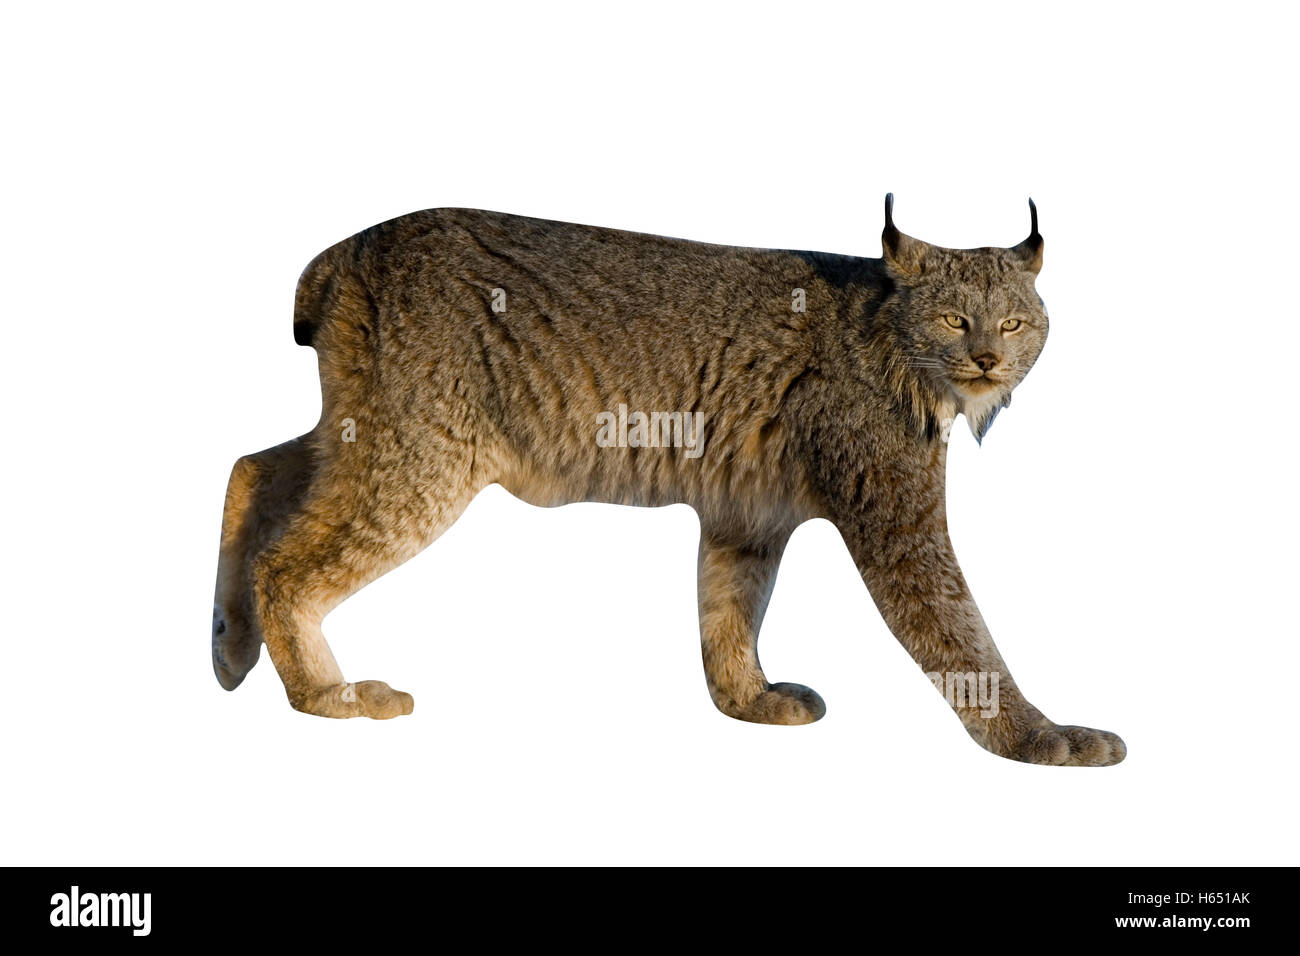 Canadian lynx, Lynx canadensis, single cat in snow, - Stock Image